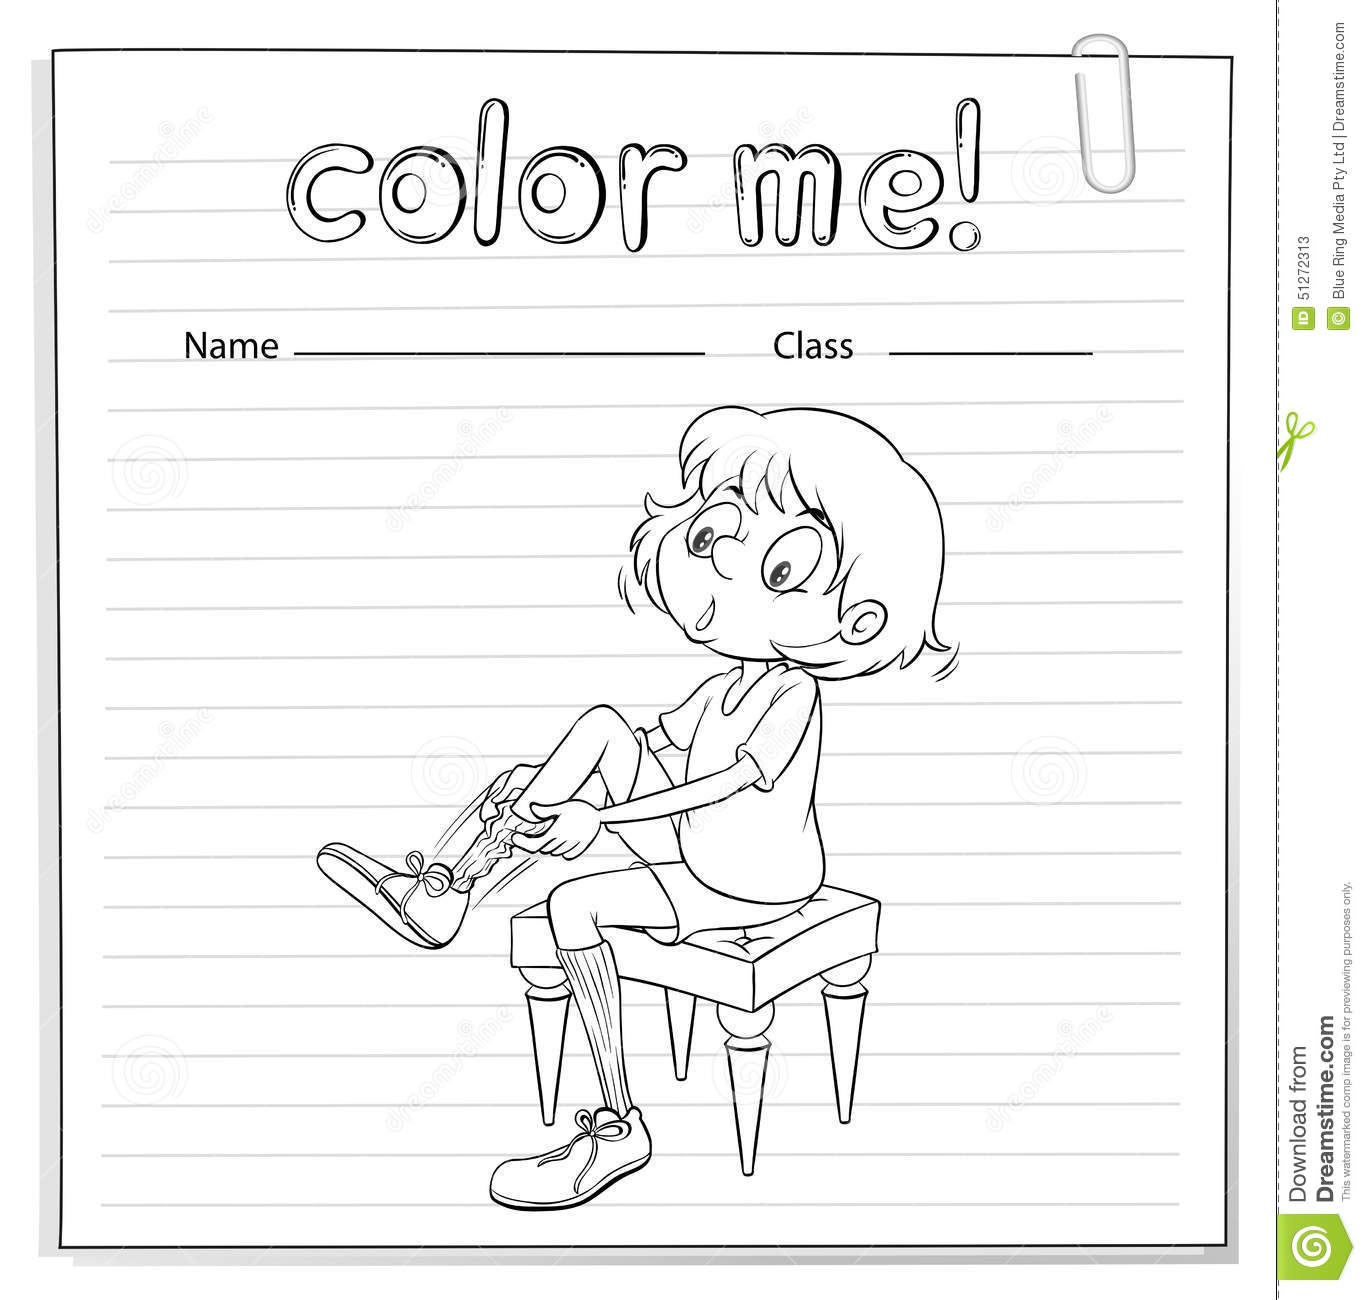 Coloring Worksheet Girl Stock Illustrations 316 Coloring